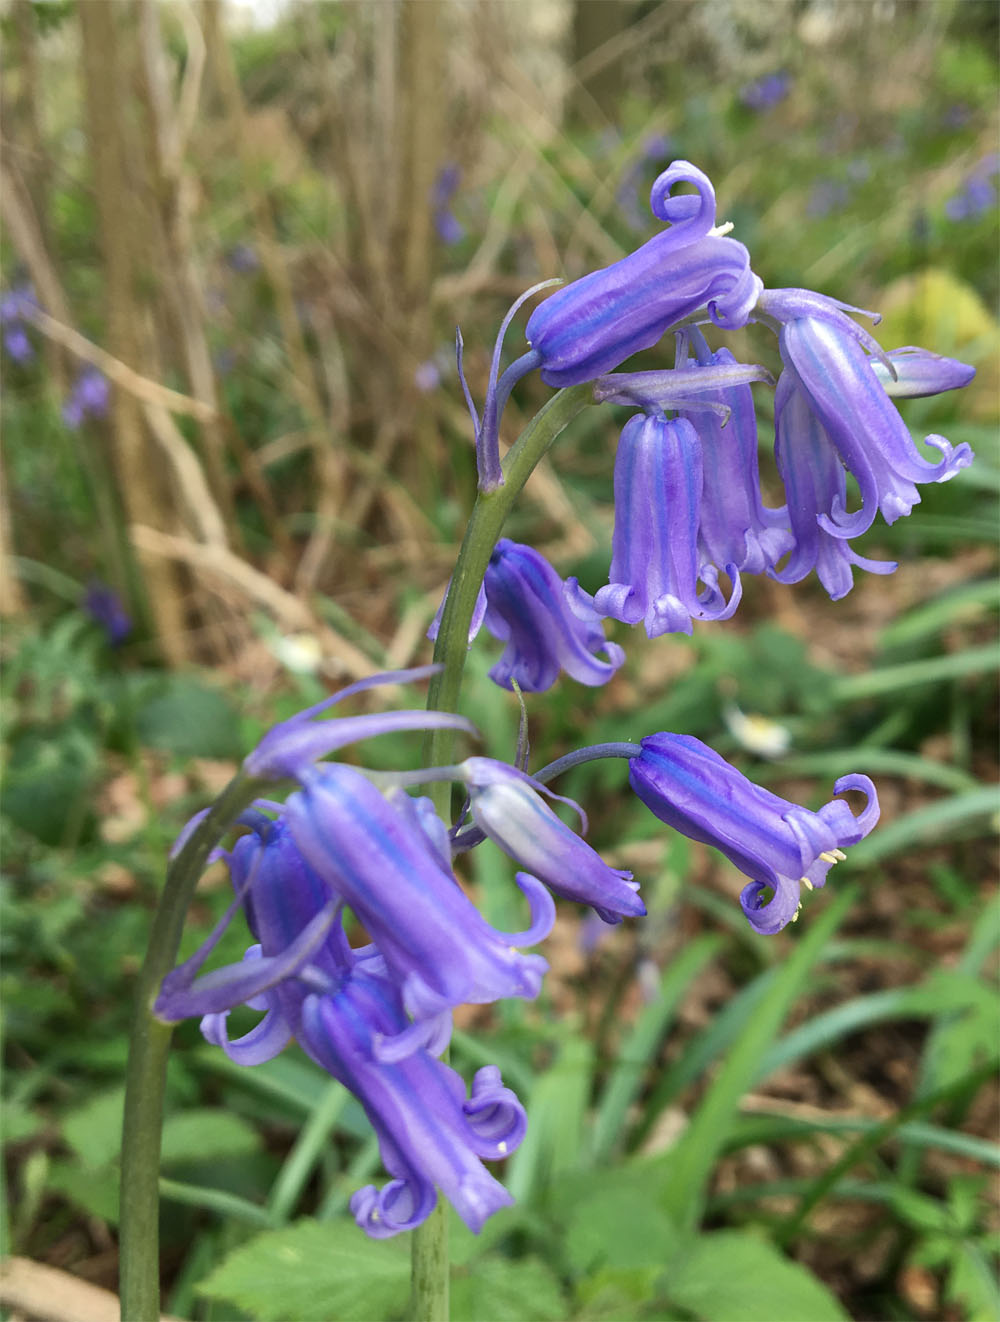 Bluebell 8 Apr 20